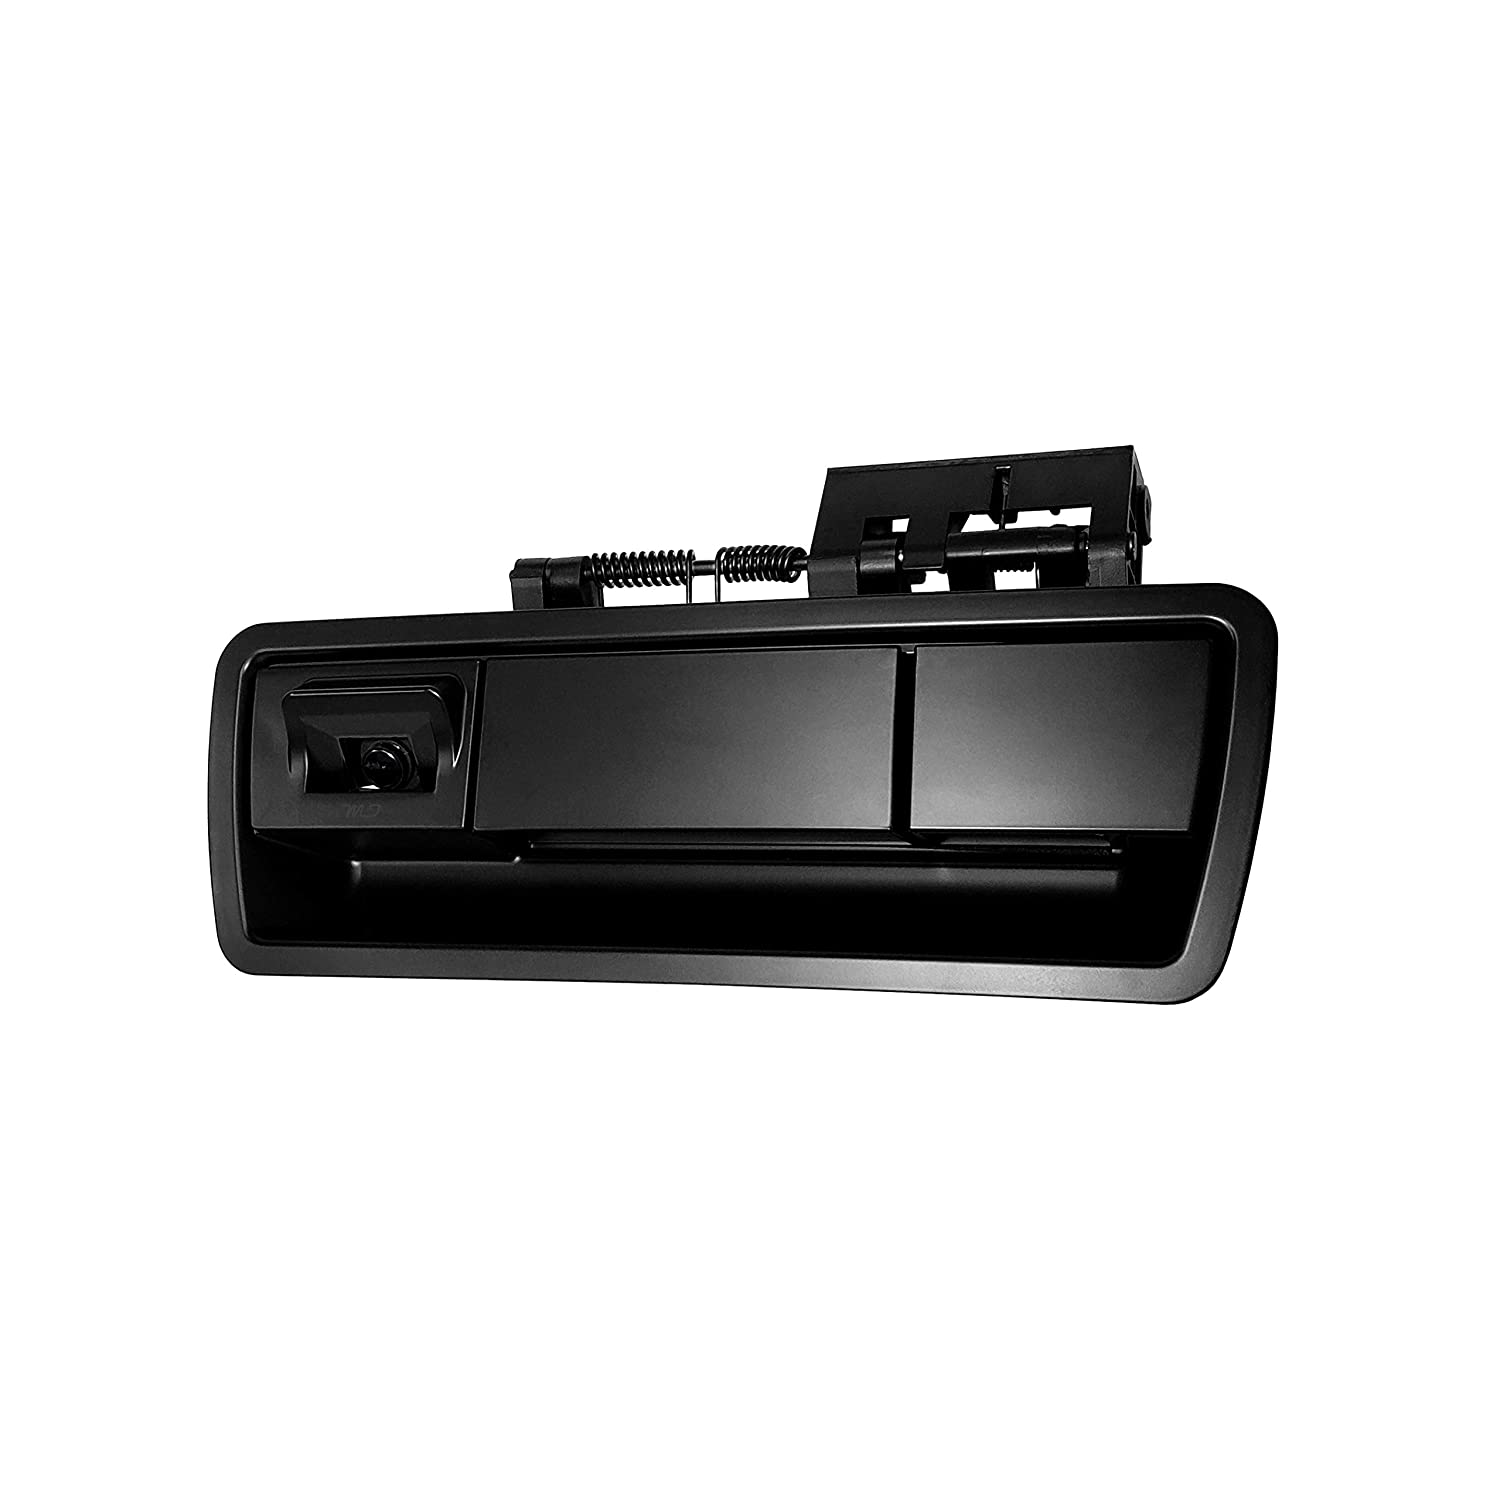 Master Tailgaters Black Tailgate Handle with Backup Camera Replacement for Nissan Armada 2004-2015